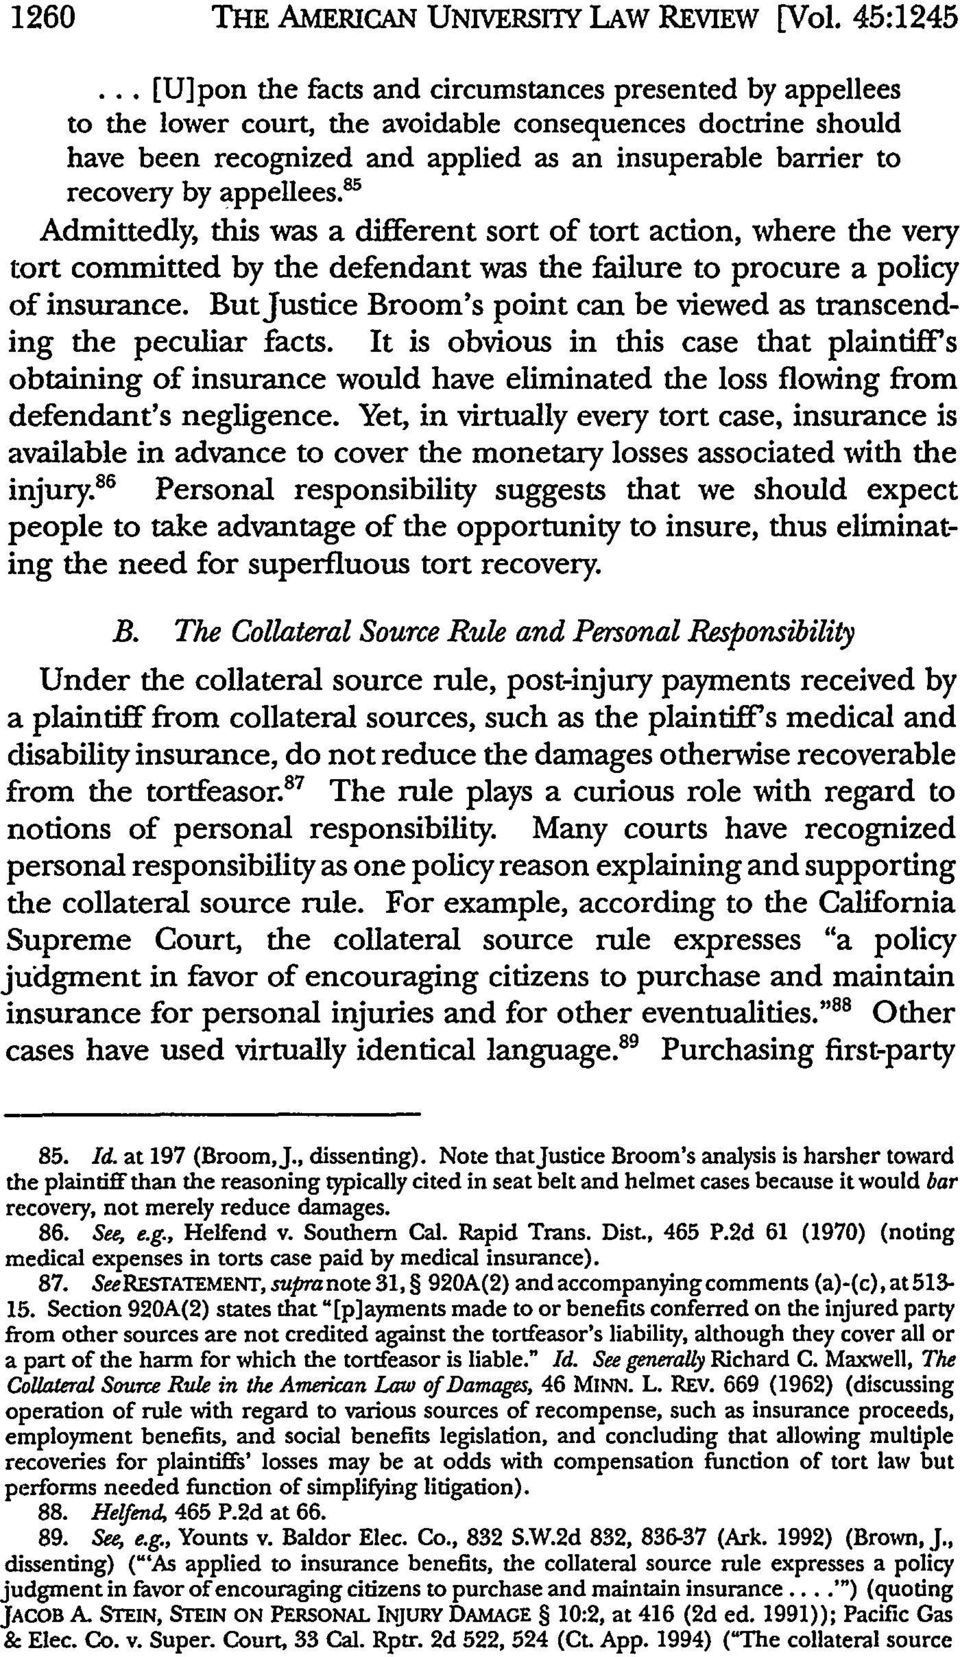 appellees.' Admittedly, this was a different sort of tort action, where the very tort committed by the defendant was the failure to procure a policy of insurance.